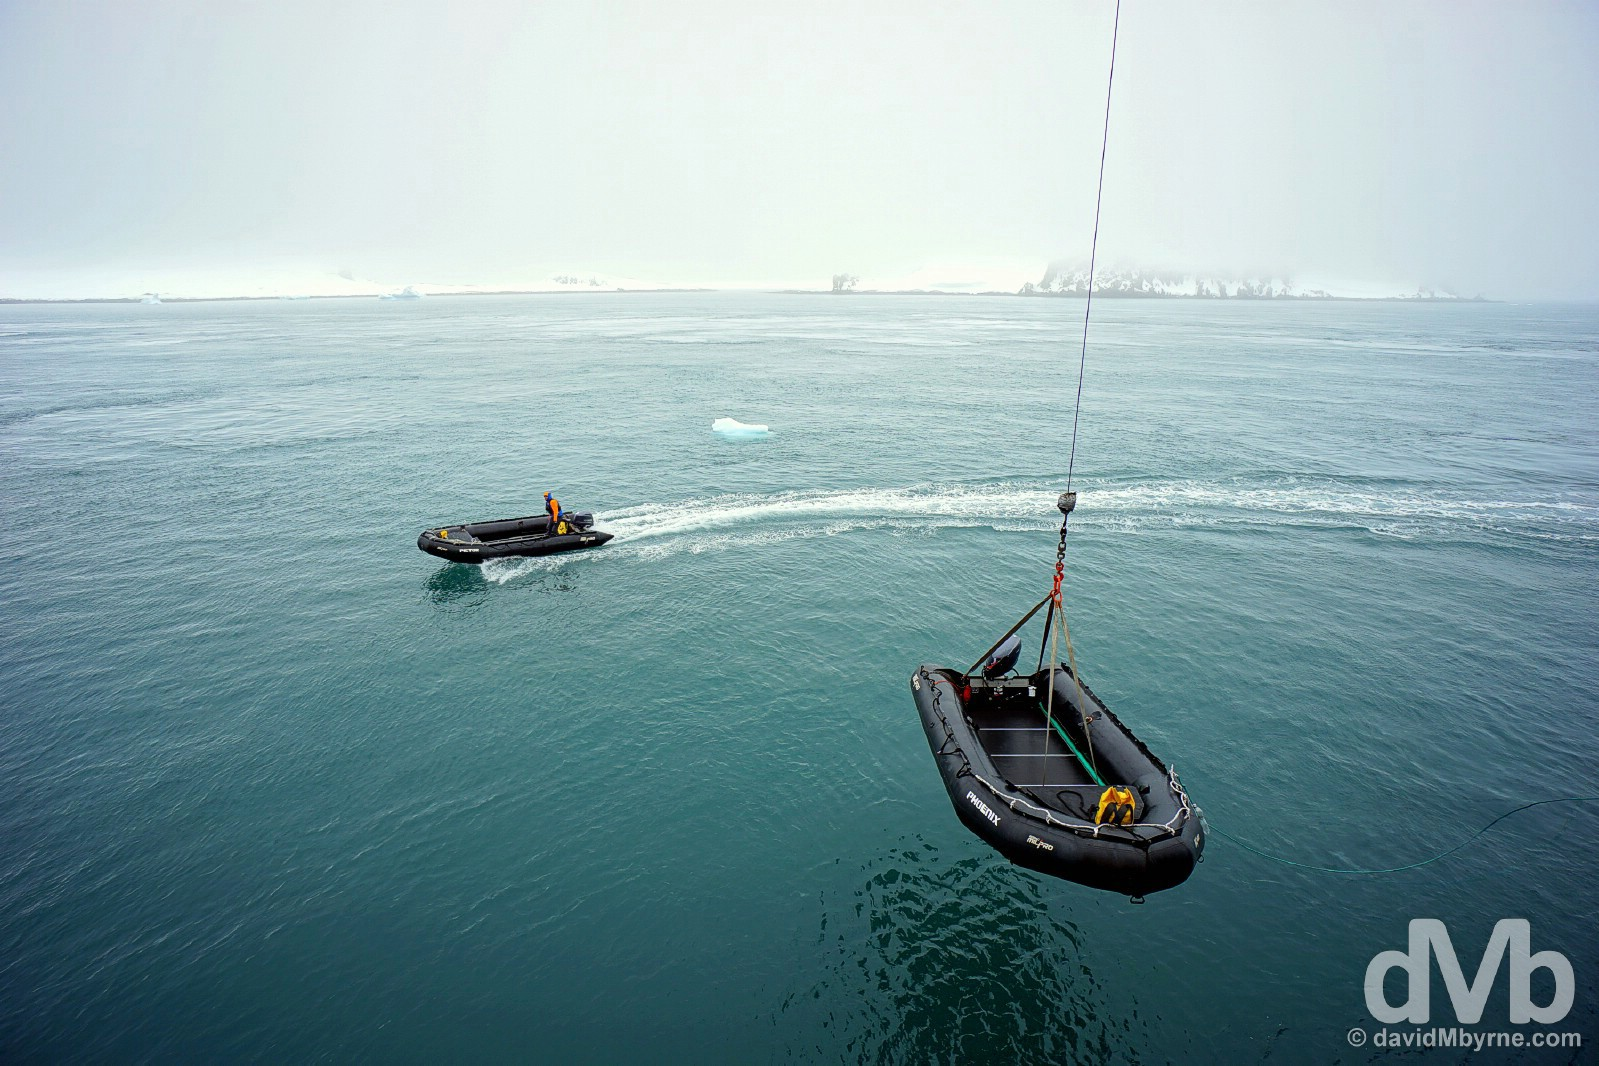 Zodiacs being lowered from the M/V Ocean Endeavour into the water after arrival at the sub-Antarctic Aticho Island group of the South Shetland Islands. November 28, 2015.